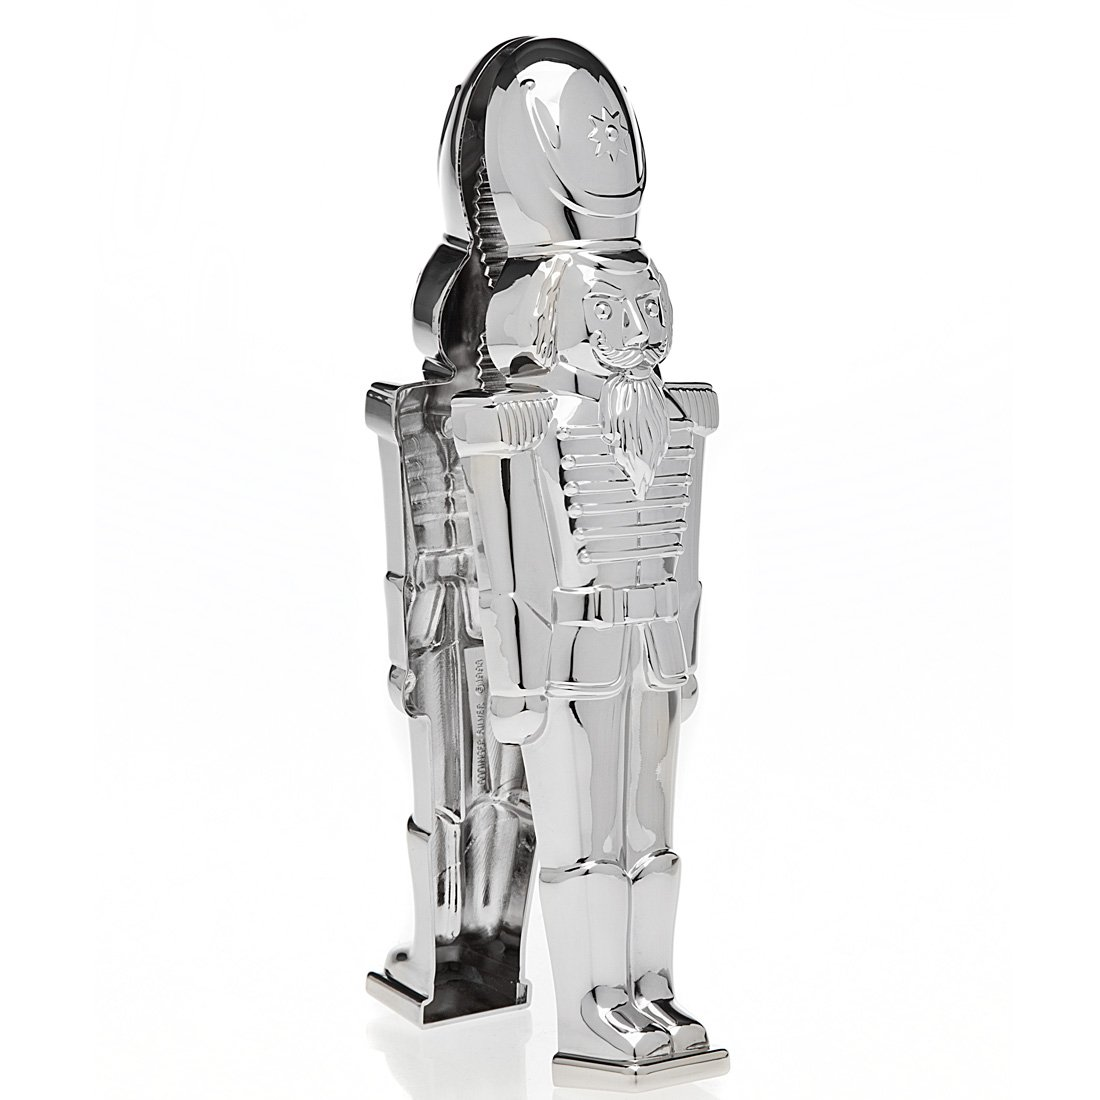 Godinger New And Exclusive Traditional Soldier Stainless Steel Christmas Nutcracker, Festive Holiday Décor- The only nutcracker figure that cracks nuts-Perfect gift item, comes in a beautiful gift box by Godinger